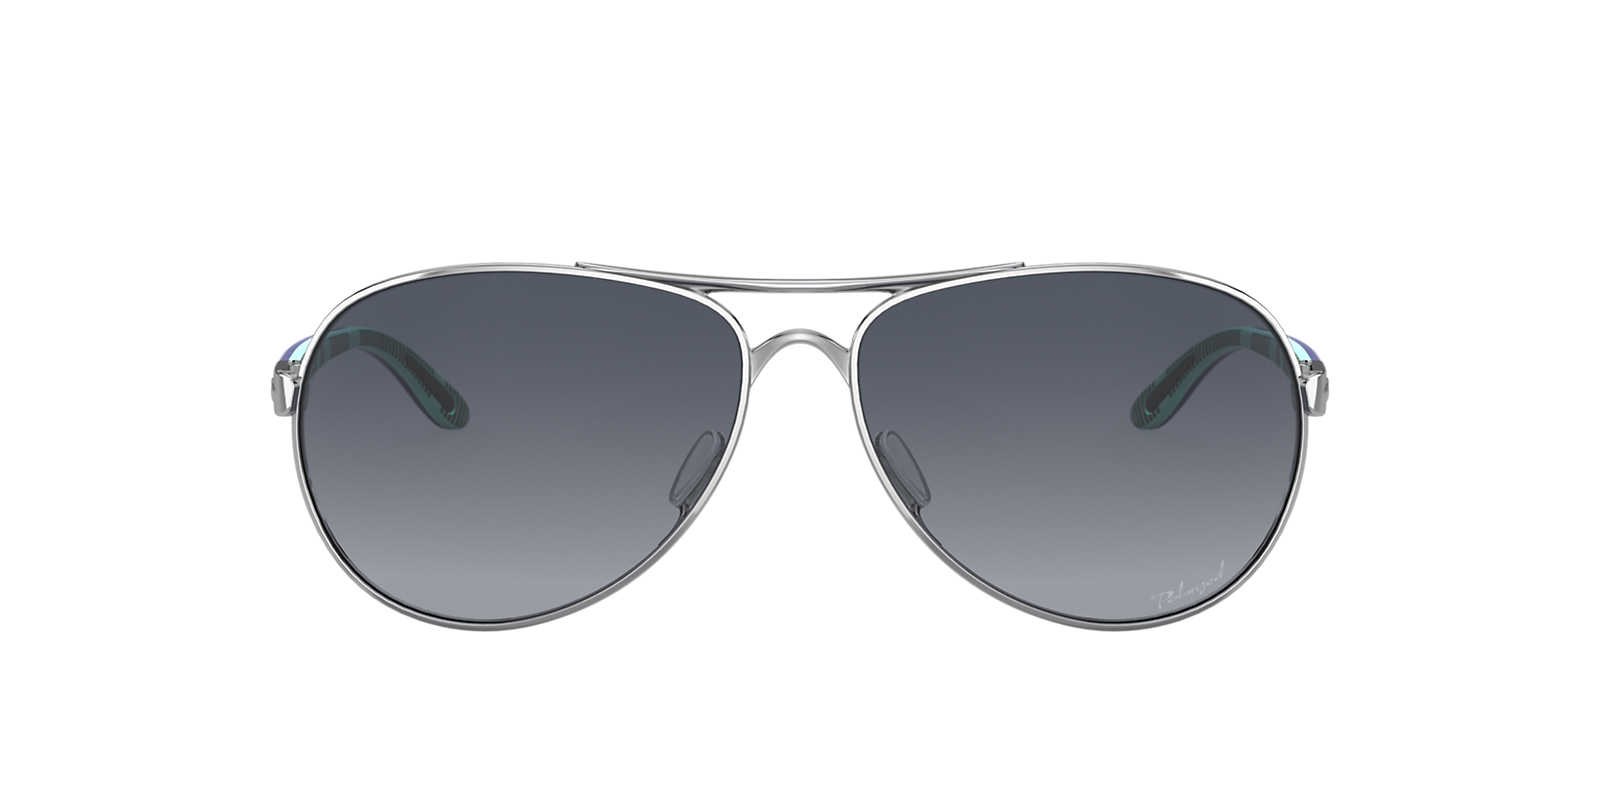 ypgdf Oakley Sunglasses for Women | Sunglass Hut